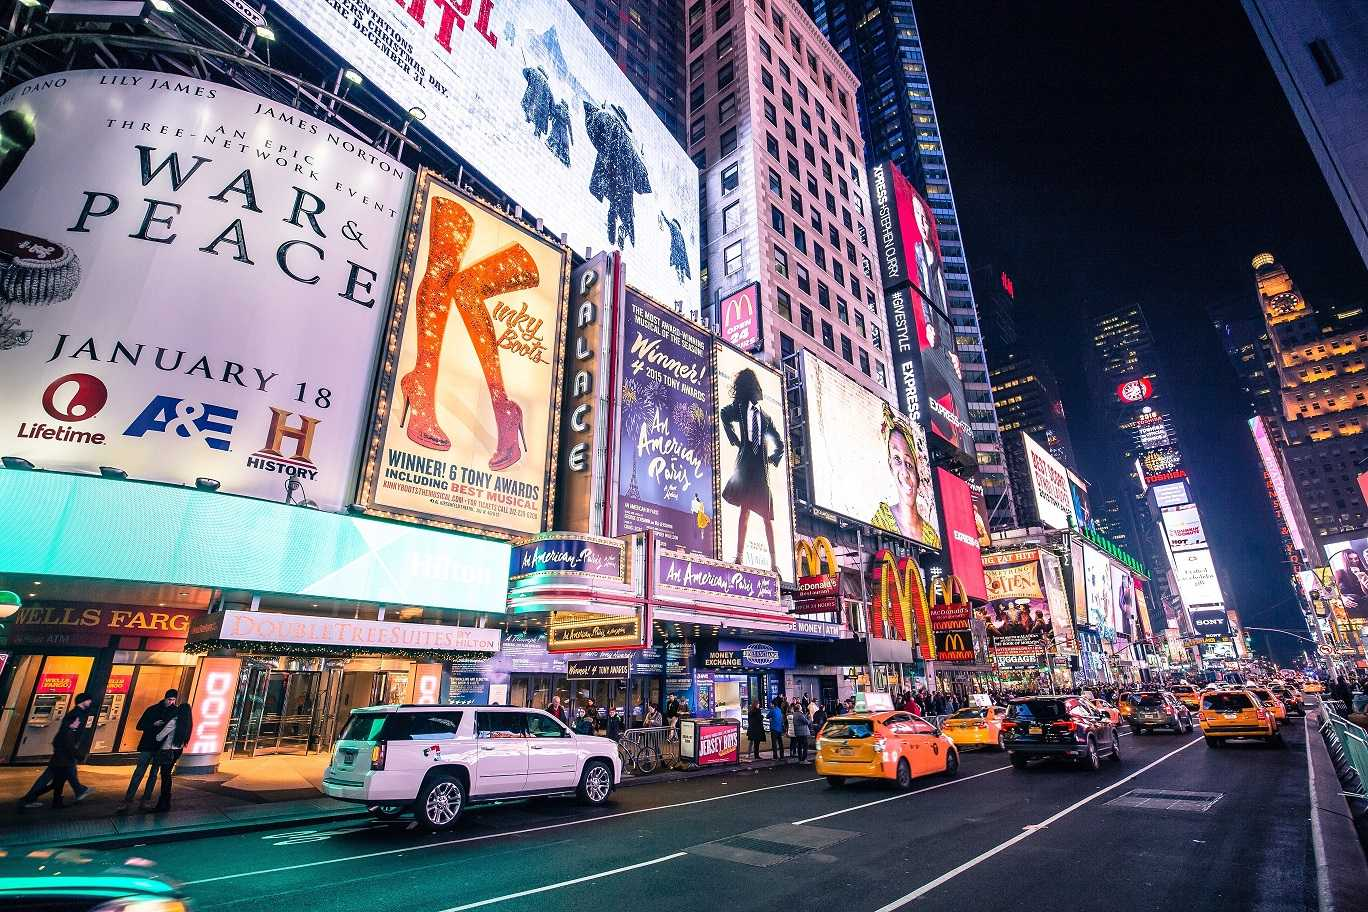 Broadway in New York City, Times Square